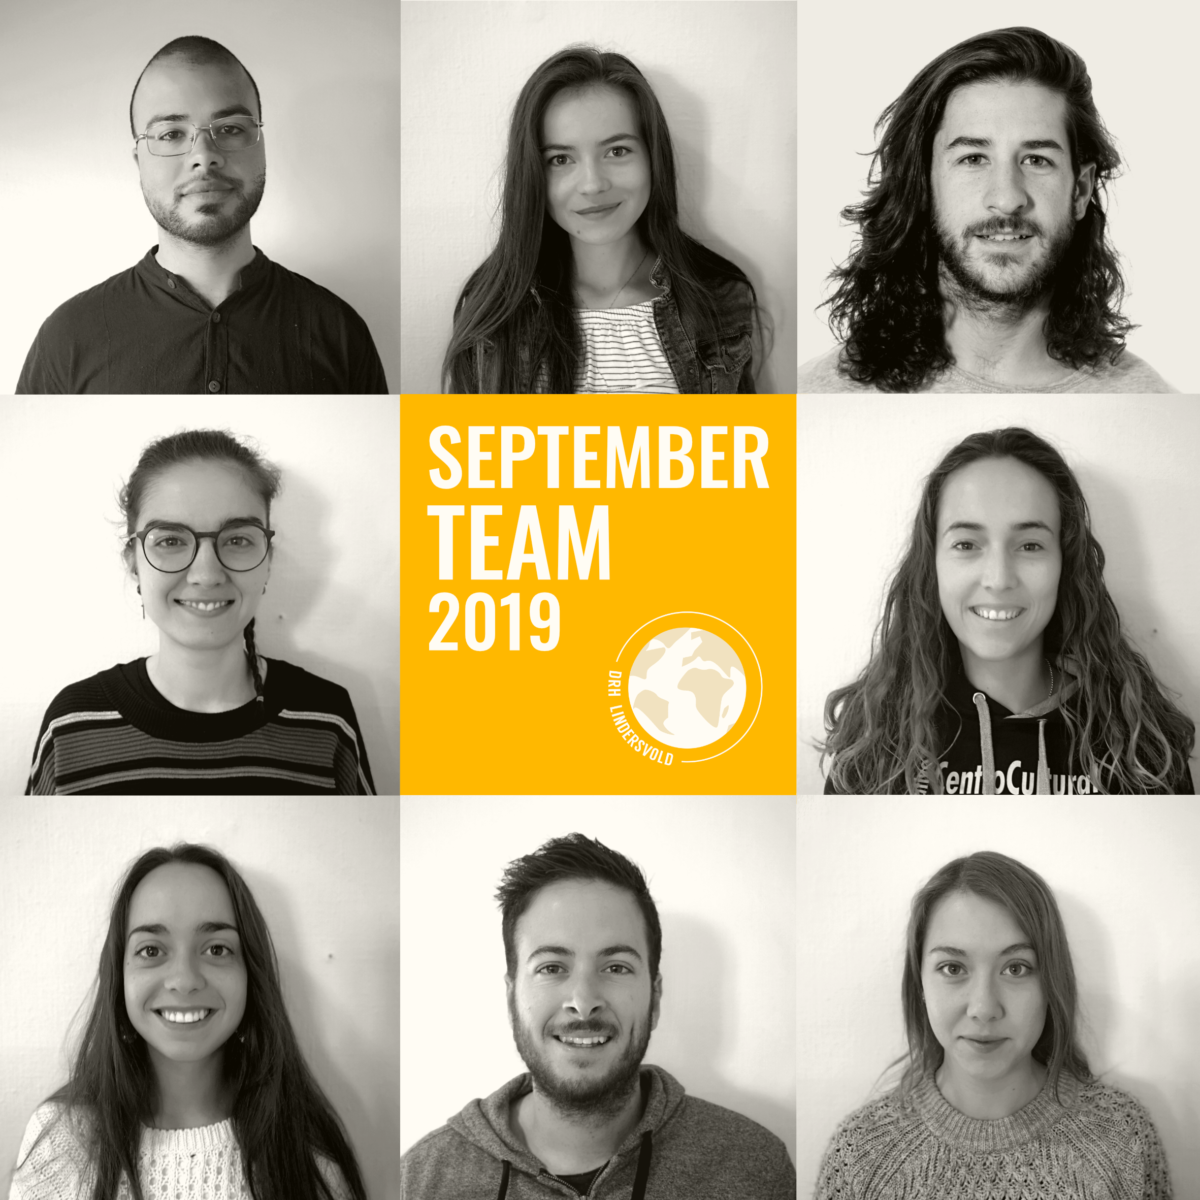 Take 10 September Team